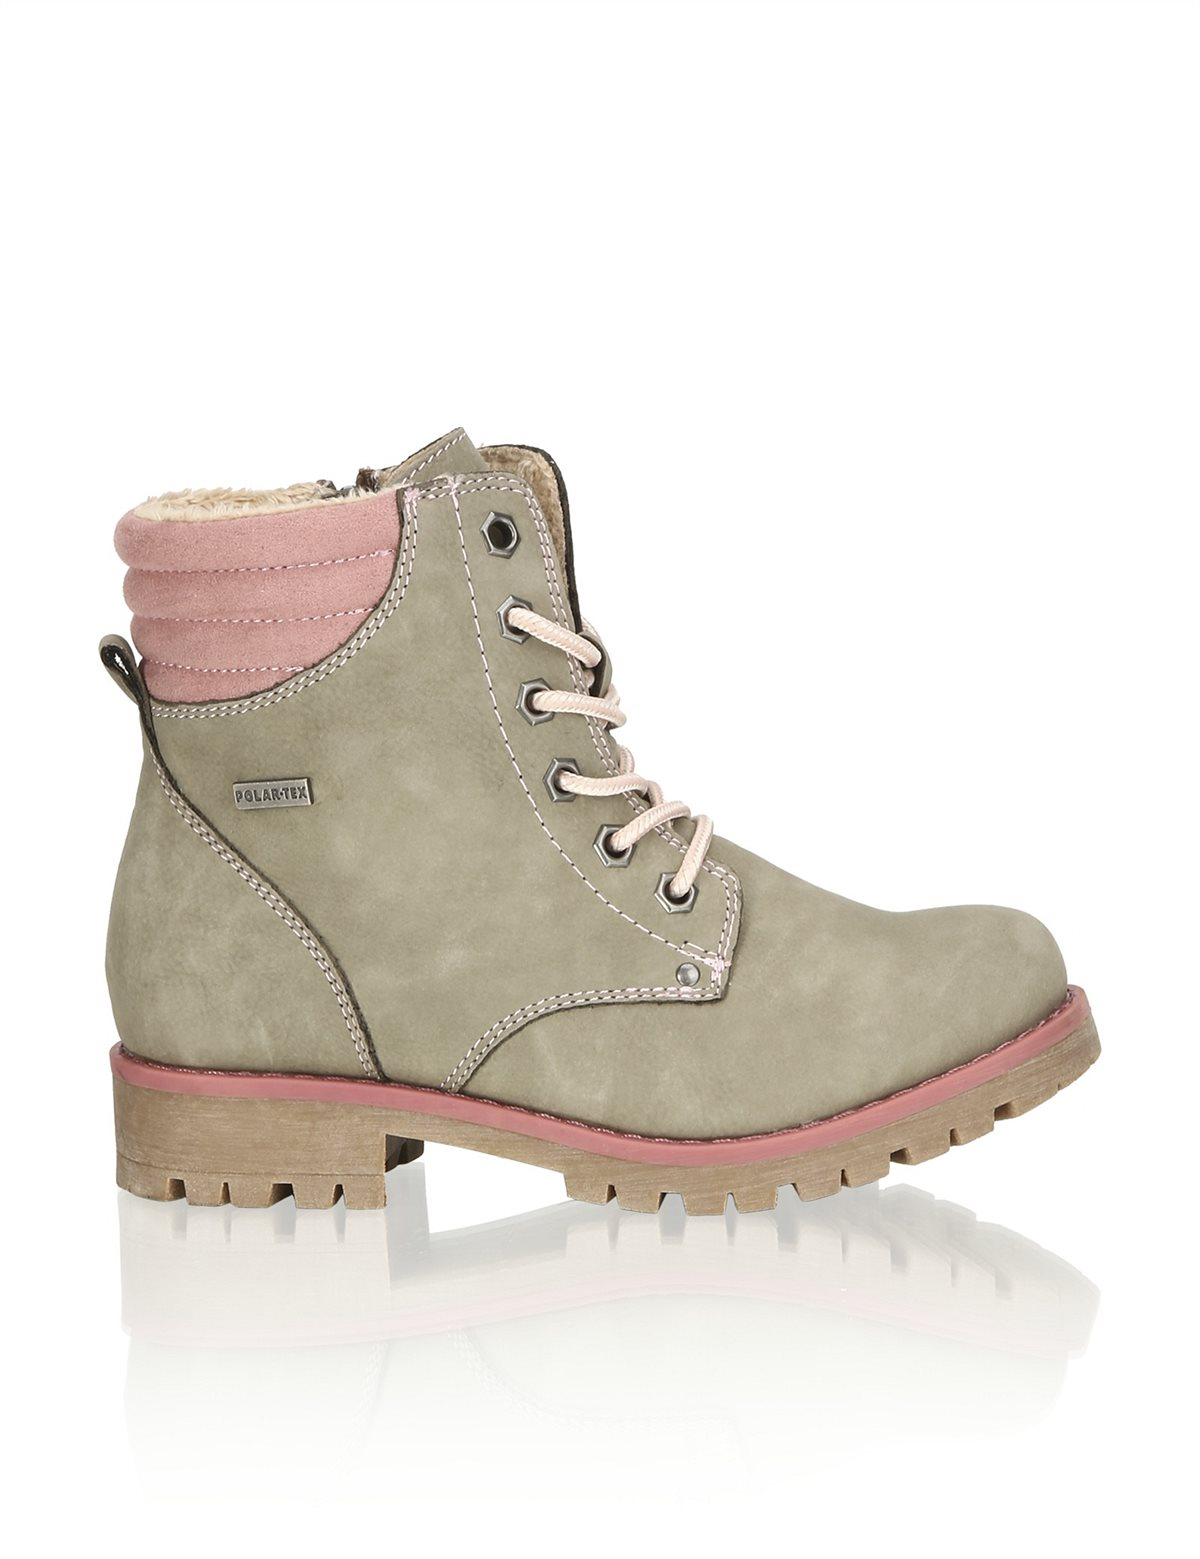 HUMANIC 12 Kids Funky Girls Boot ab EUR 39,95 ab Mitte September 3623504734